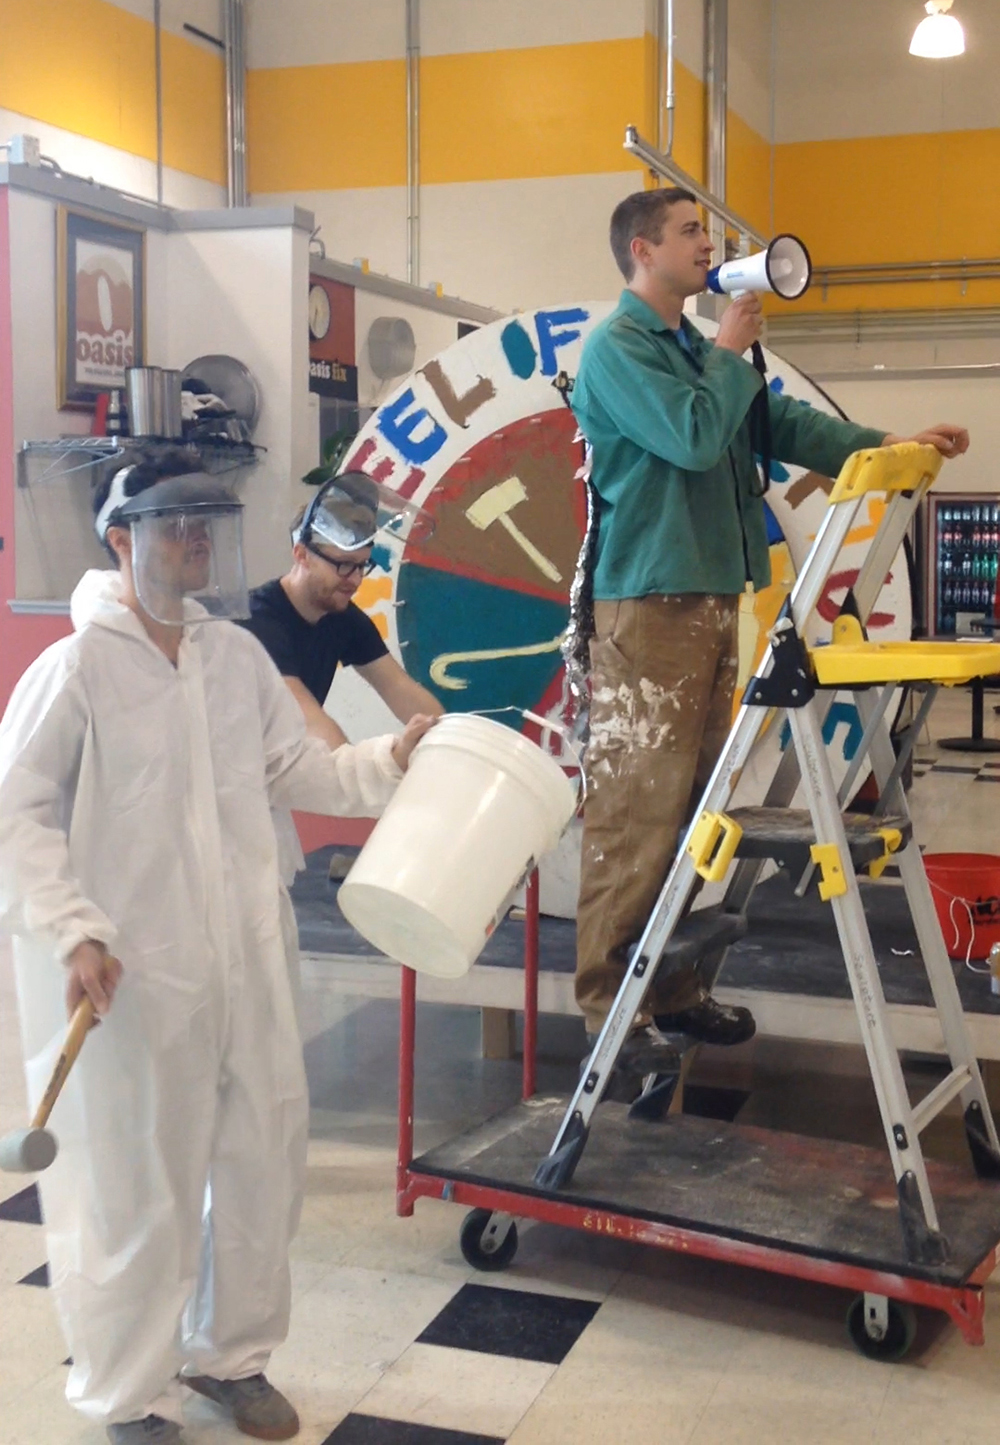 person with megaphone on a ladder, person with black glasses behind him with face-shield up, person in white jumpsuit with hammer and bucket wearing plastic face-shield